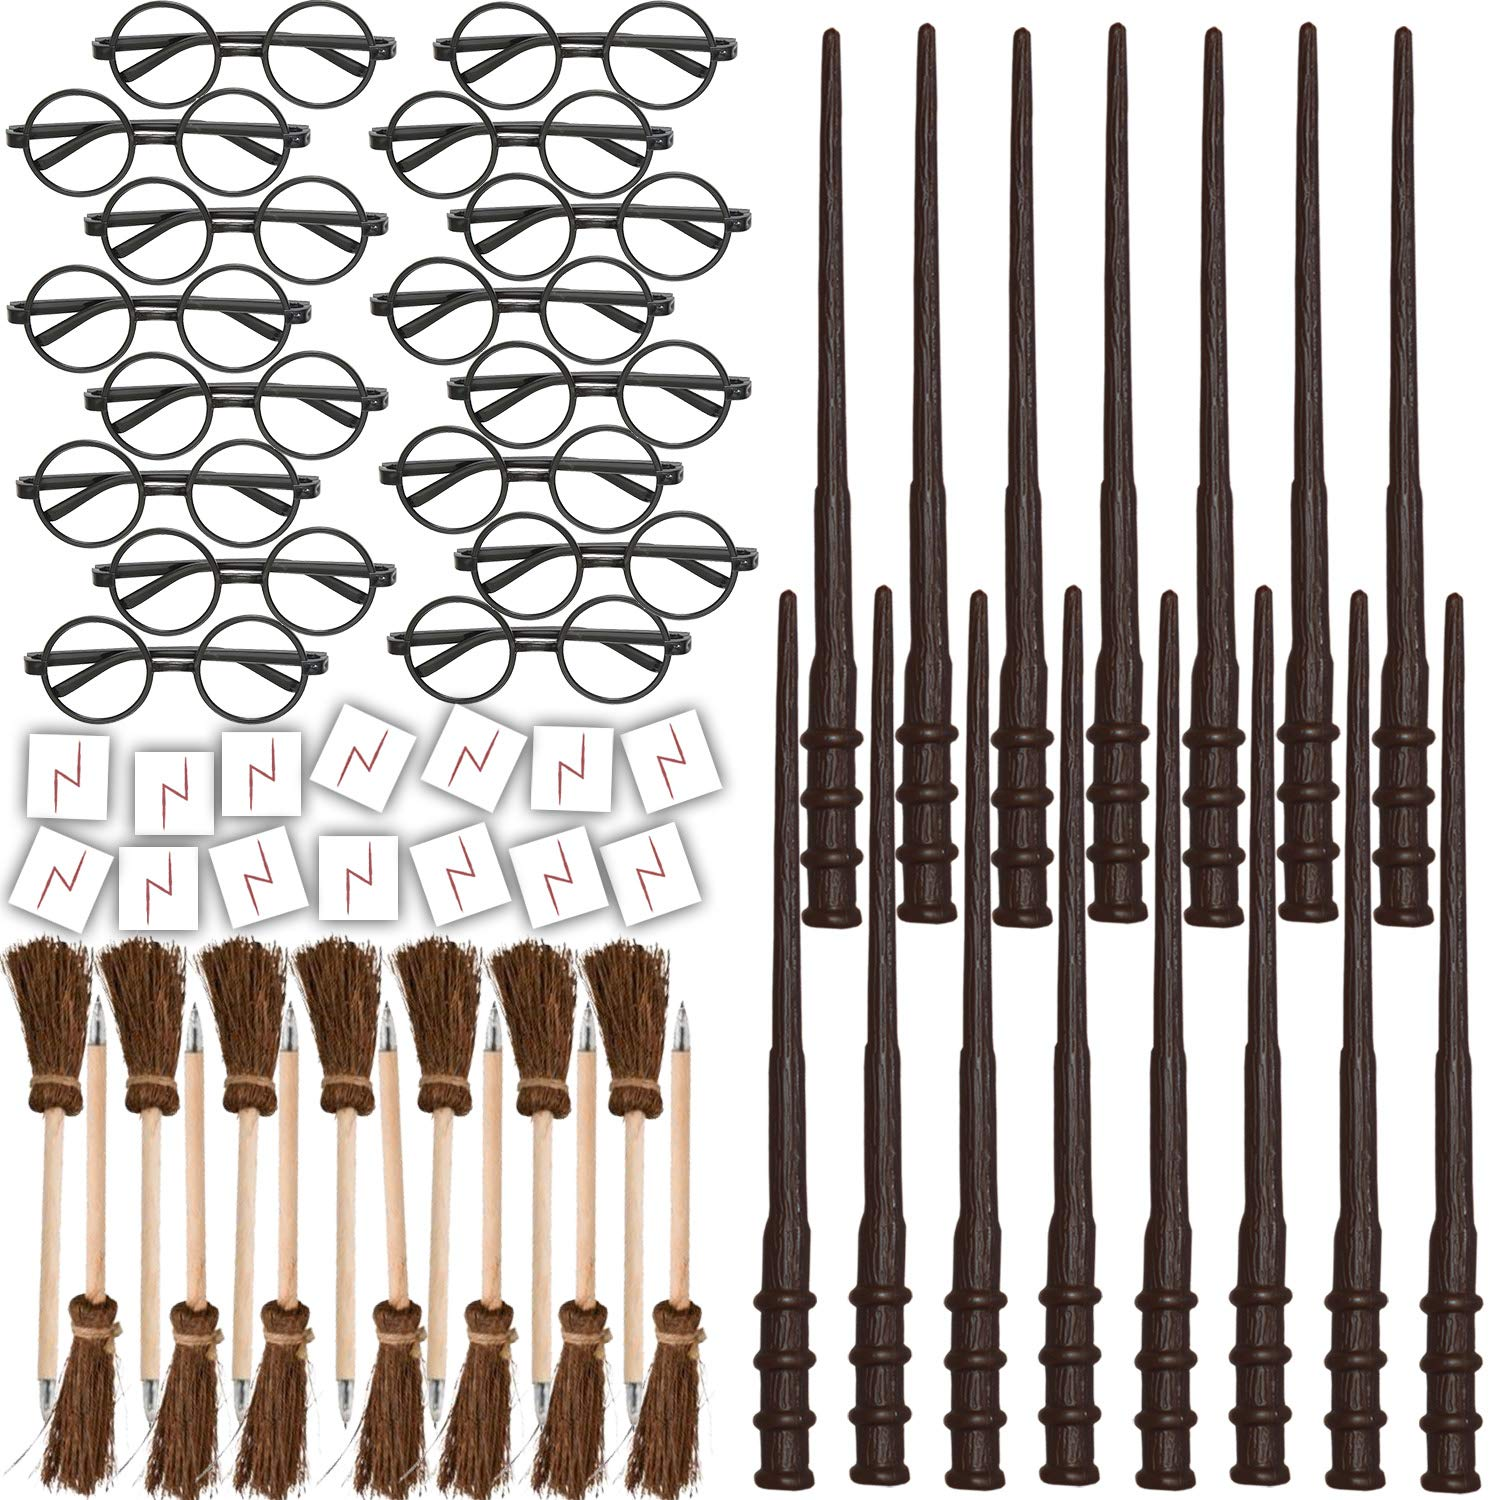 HeroFiber Wizard Party Favors for 16 - Includes Broom Pens, Wands, Glasses, and Lightning Scar Tattoos - Perfect for a Wizard School Theme Birthday Party (16 of Each) by HeroFiber